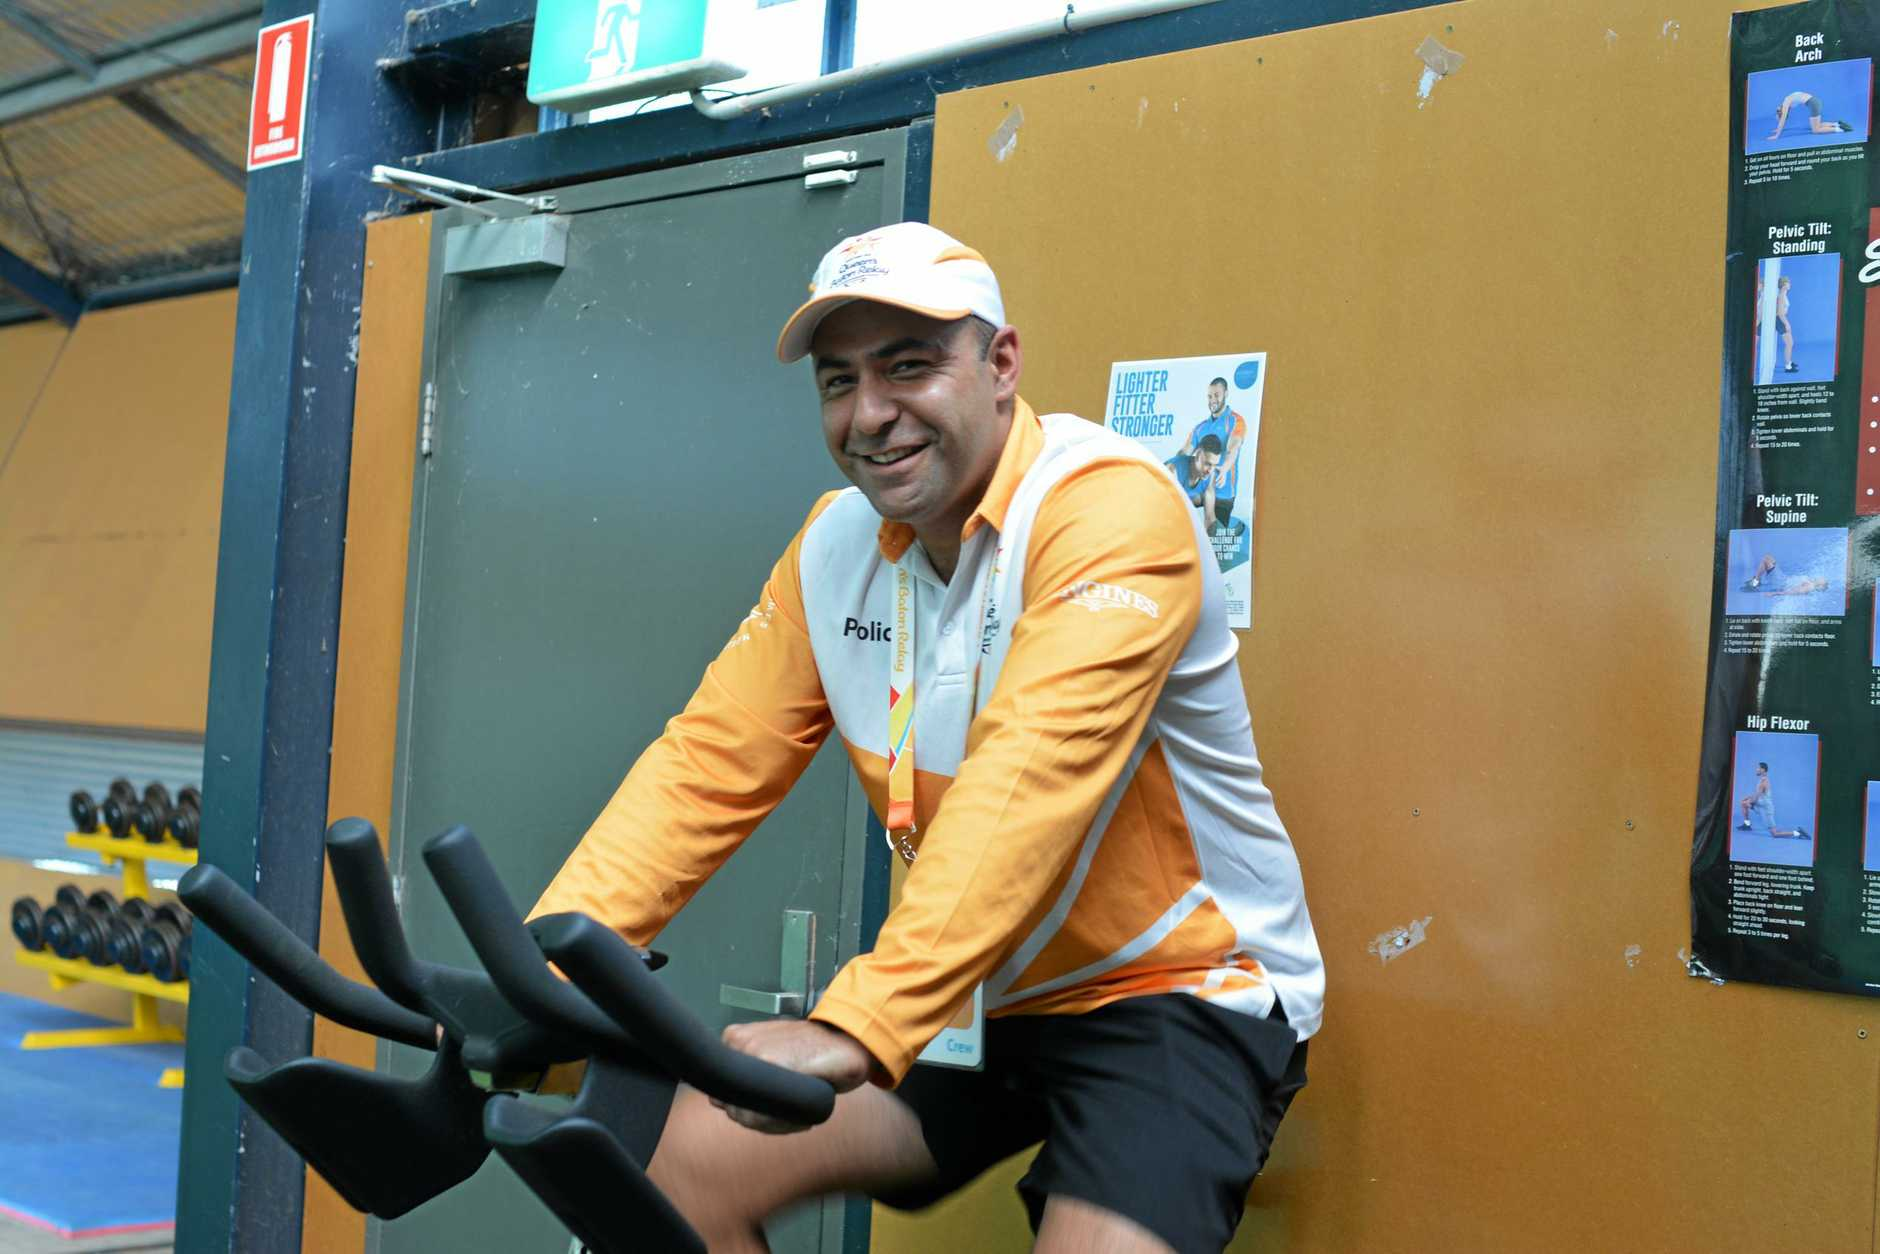 SHAPING UP: Lowood Police Constable Steve Armstrong-Ravula is keeping fit ahead of his new role as Asset Protection Officer of the Queen's Baton Relay.